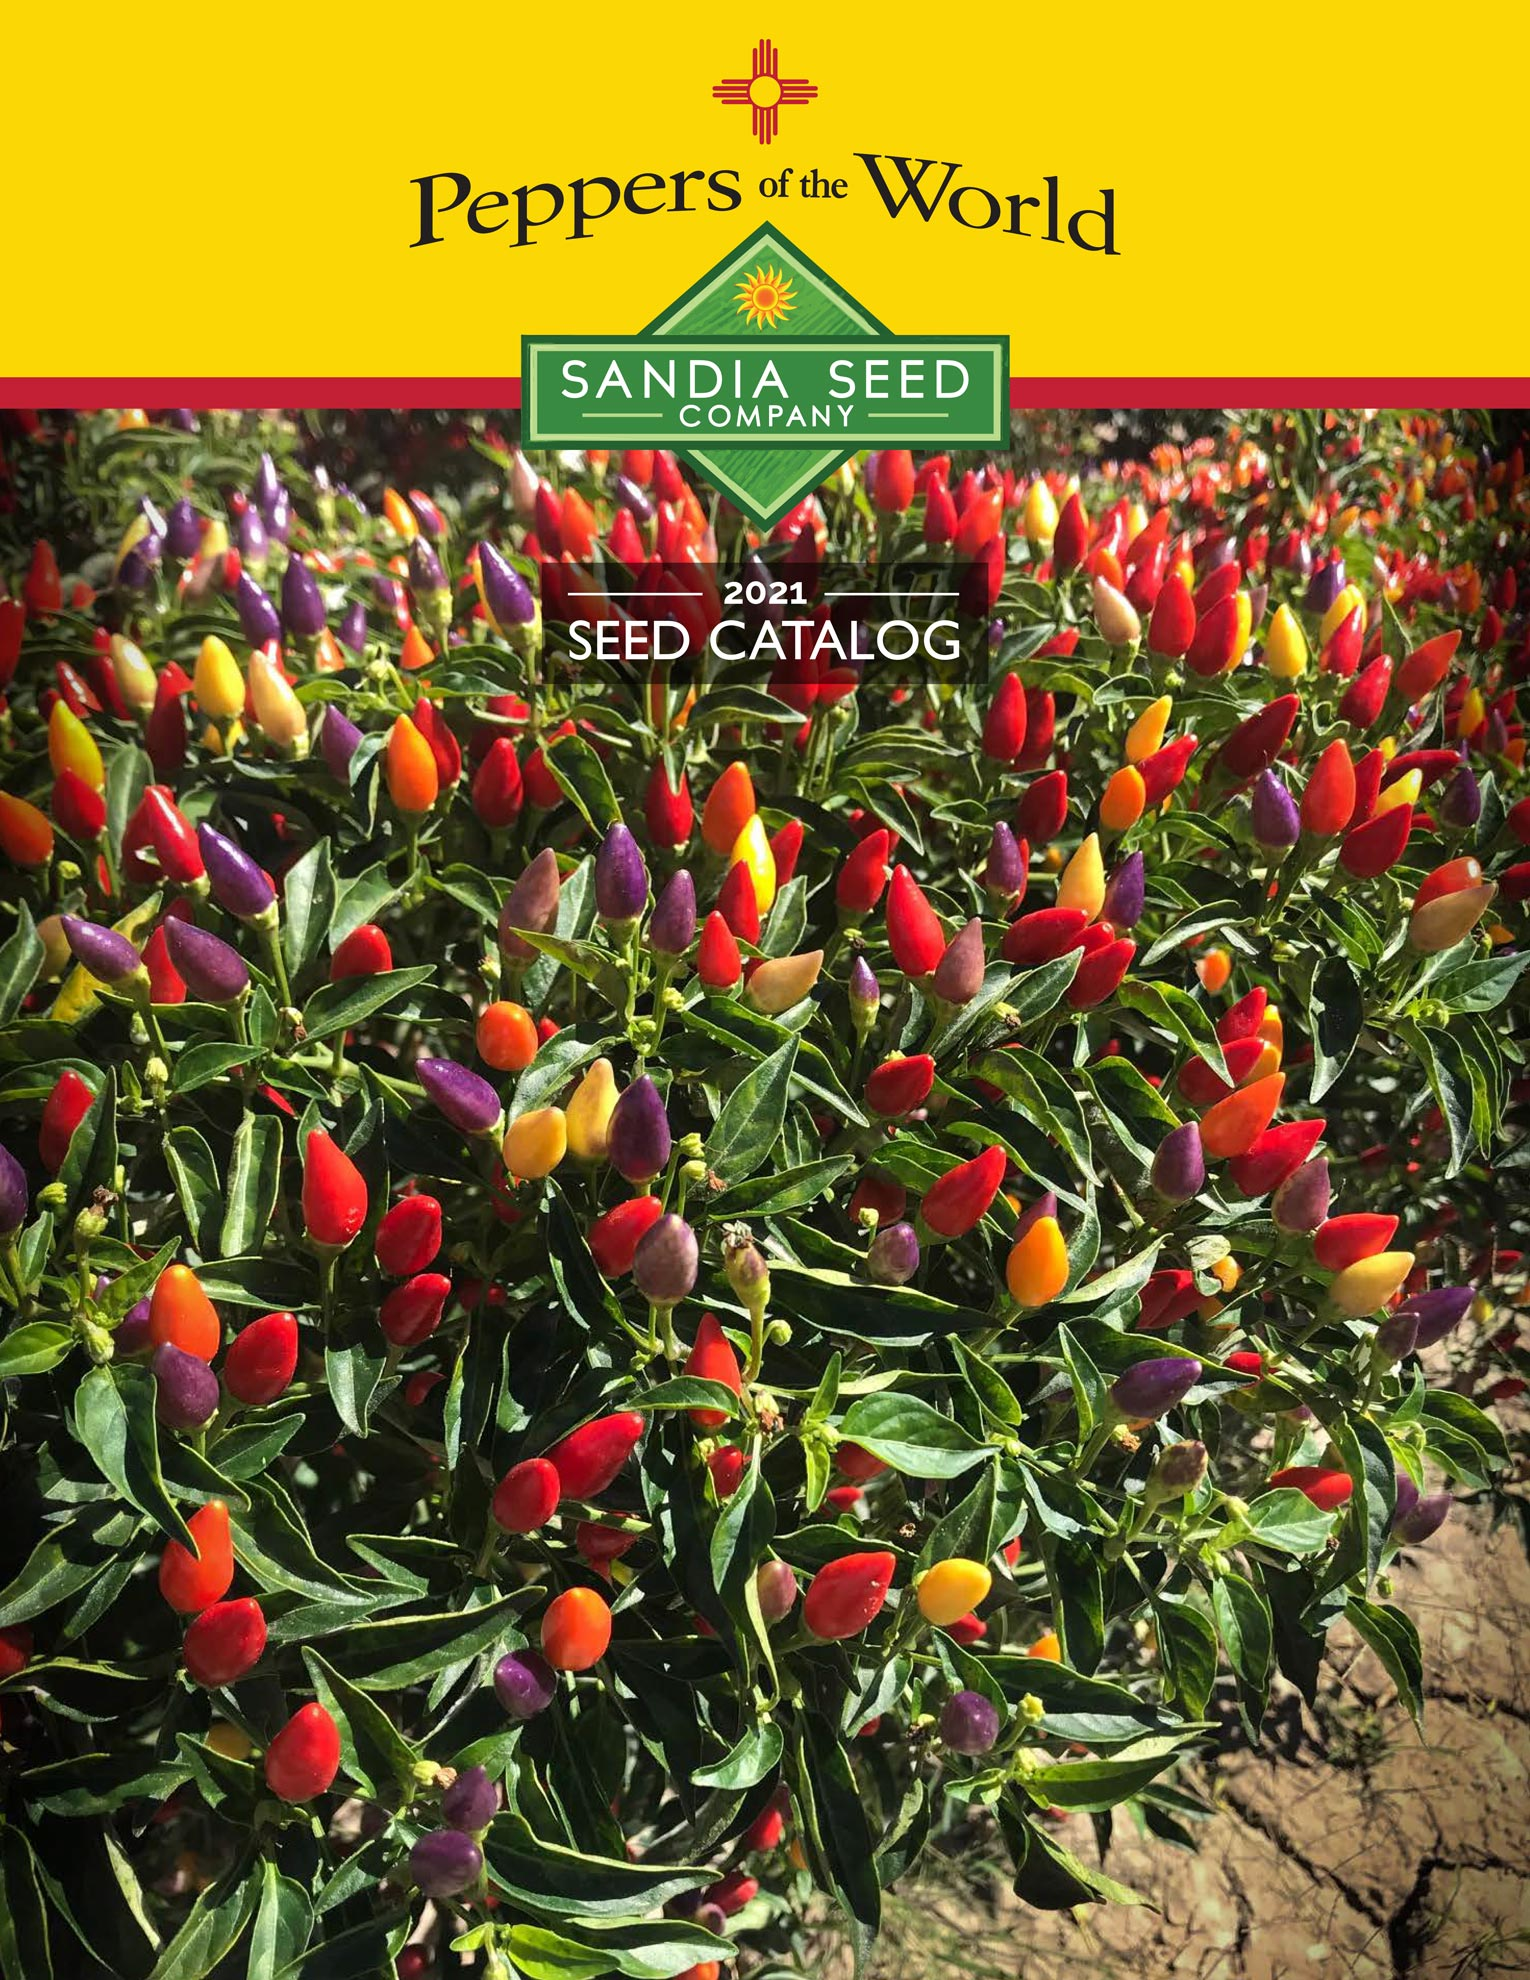 2021 Seed Catalog from Sandia Seed